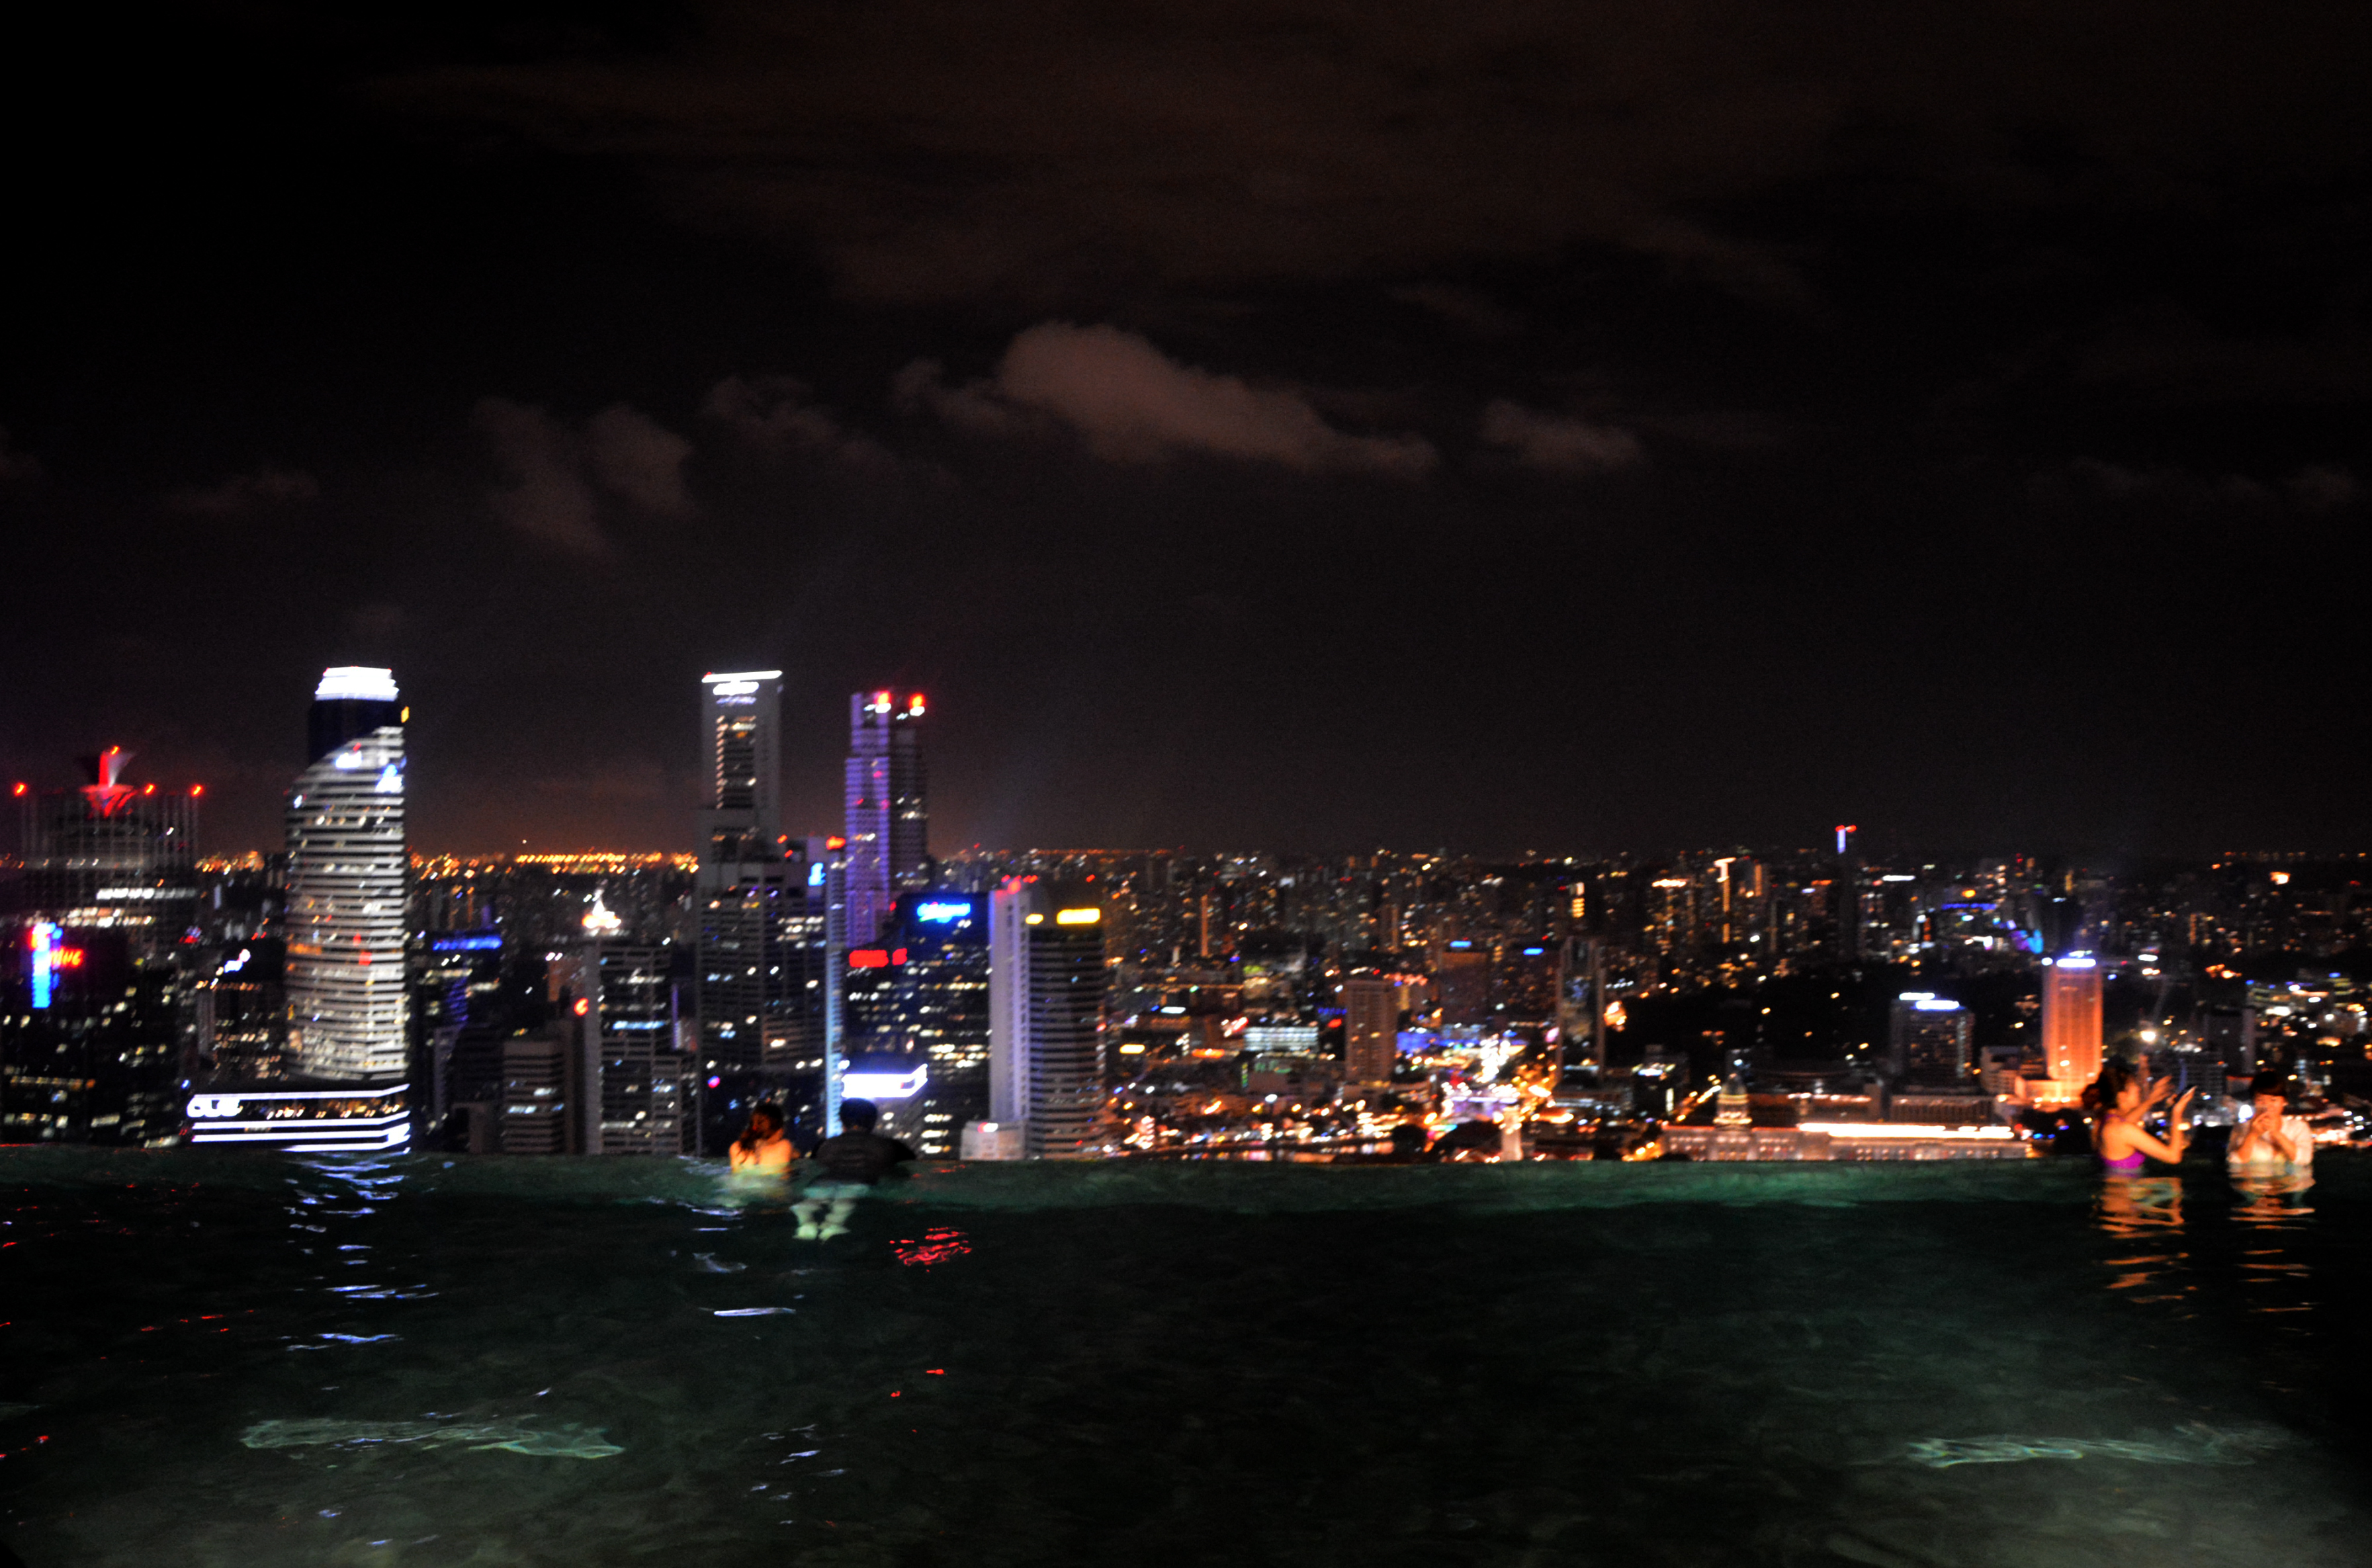 Marina Bay Sands Infinity Pool Night time